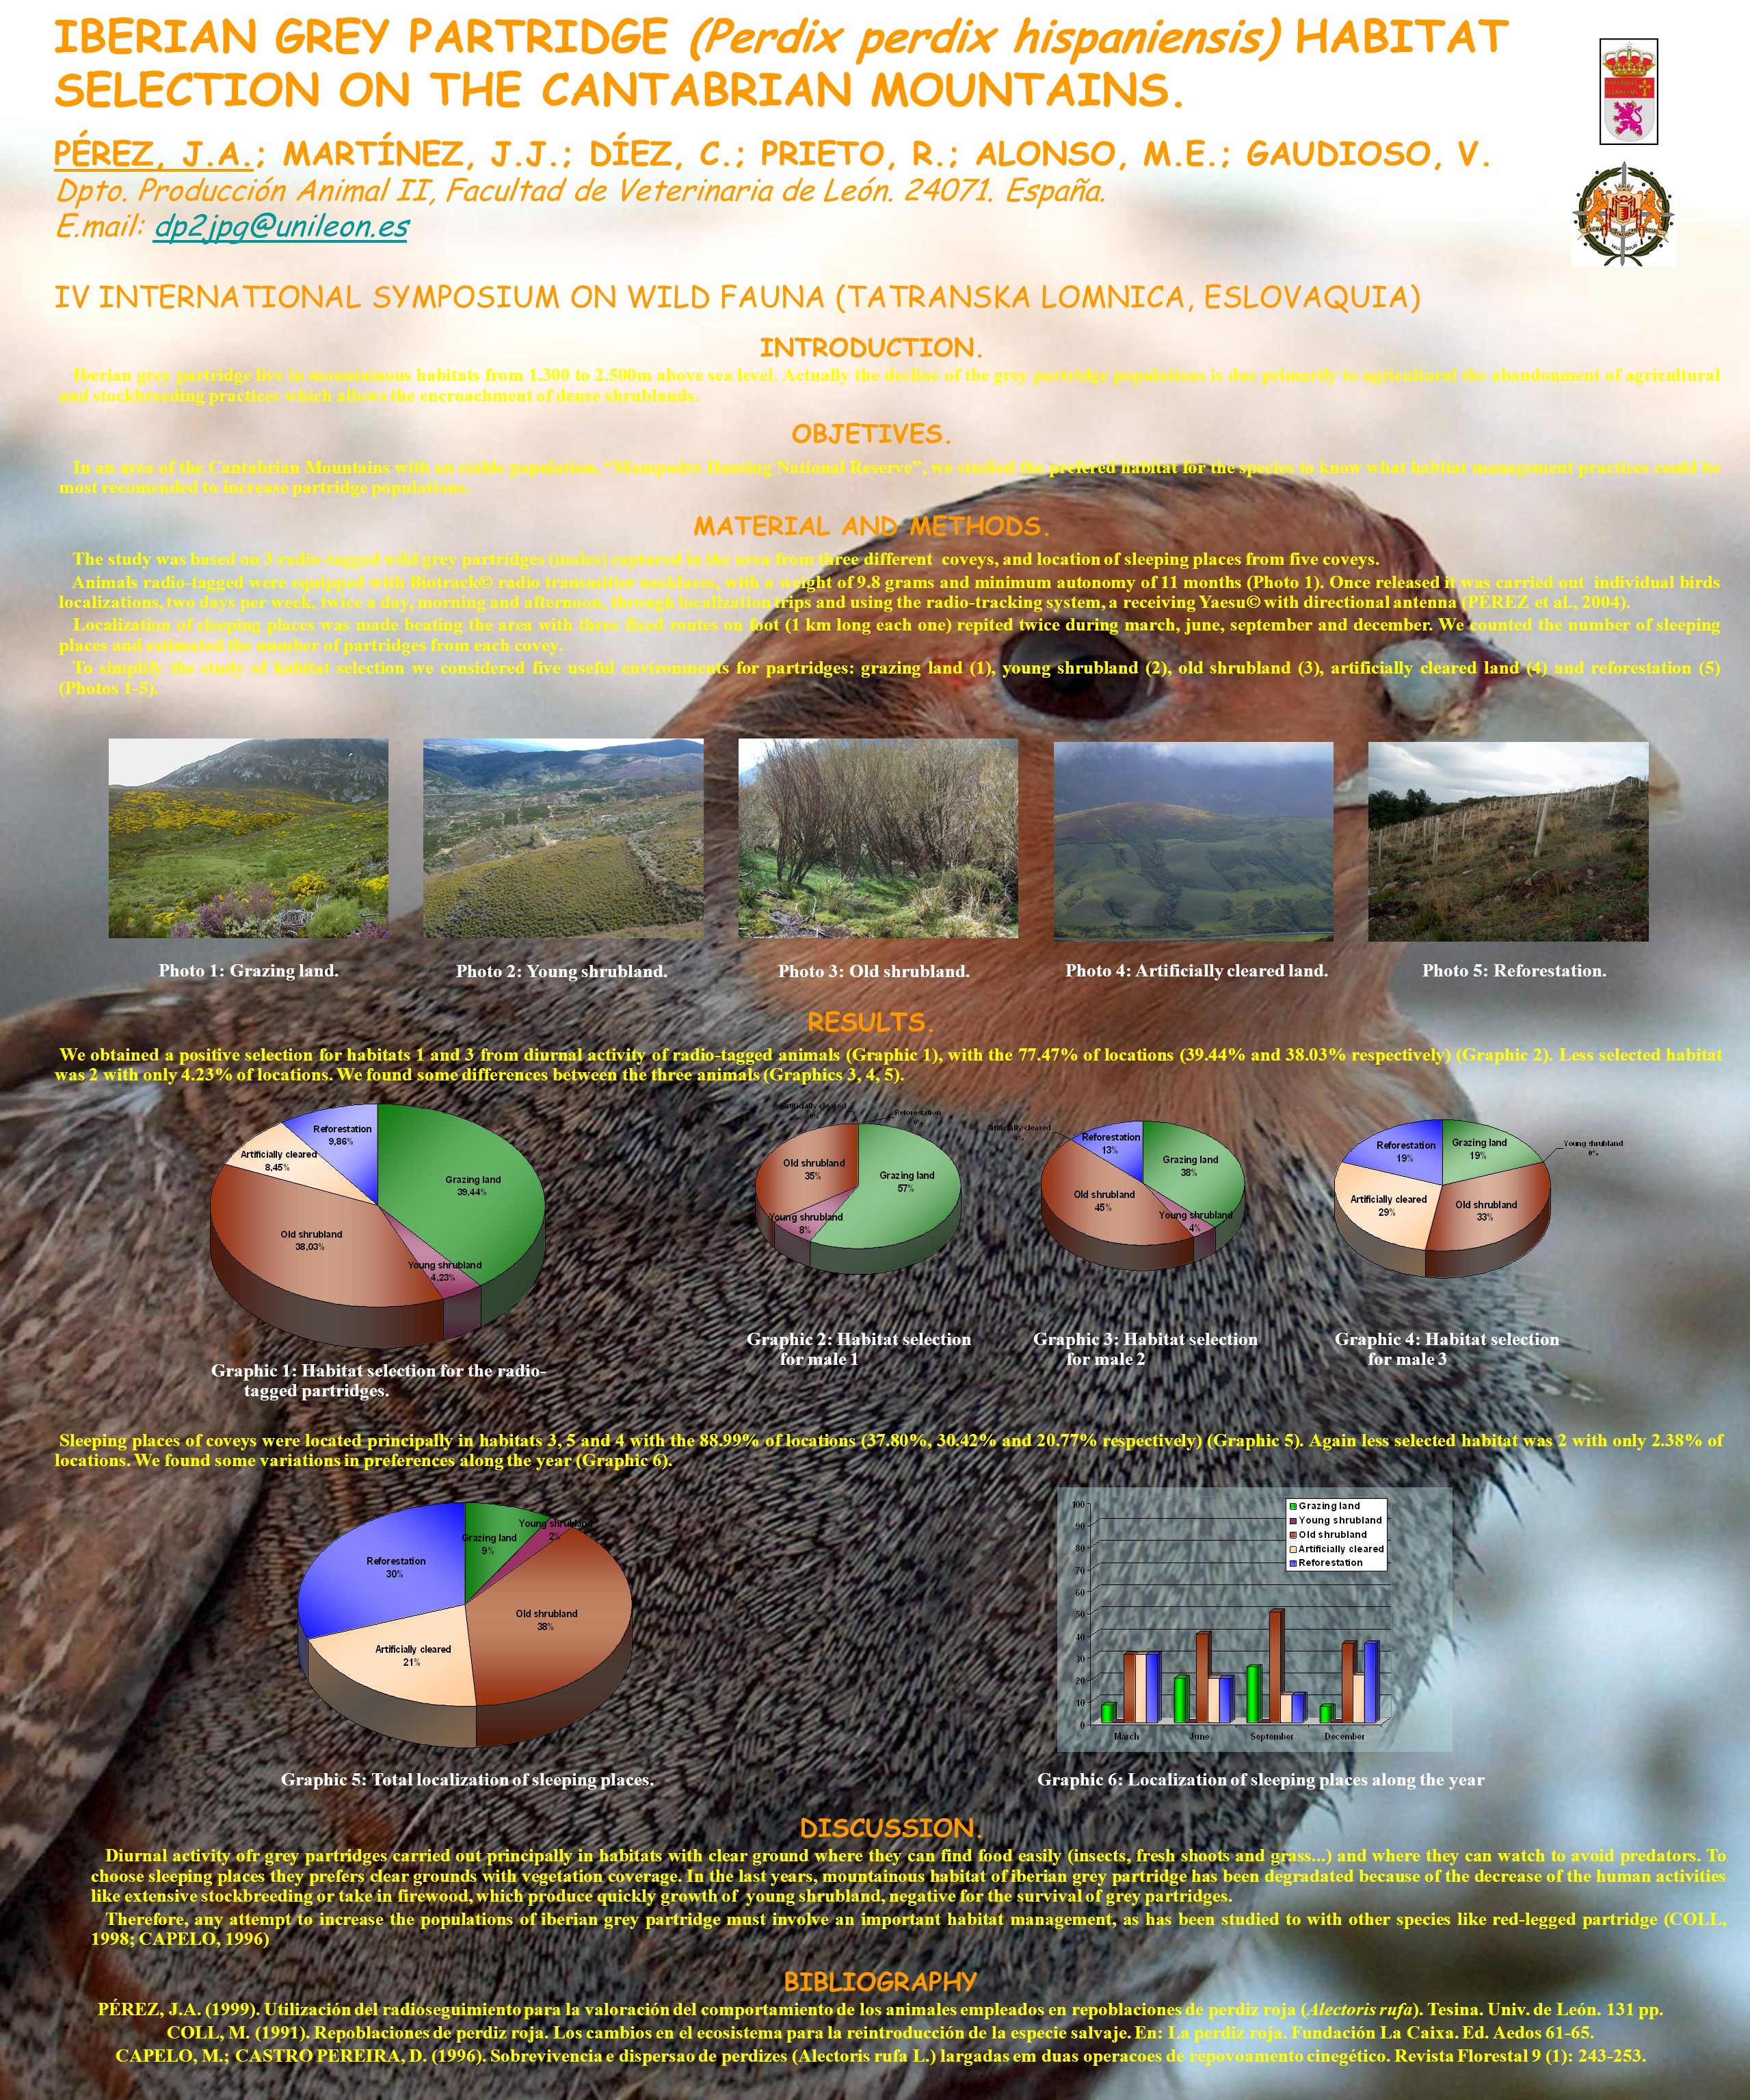 IBERIAN GREY PARTRIDGE (Perdix perdix hispaniensis) HABITAT SELECTION ON THE CANTABRIAN MOUNTAINS. PÉREZ, J.A.; MARTÍNEZ, J.J.; DÍEZ, C.; PRIETO, R.;